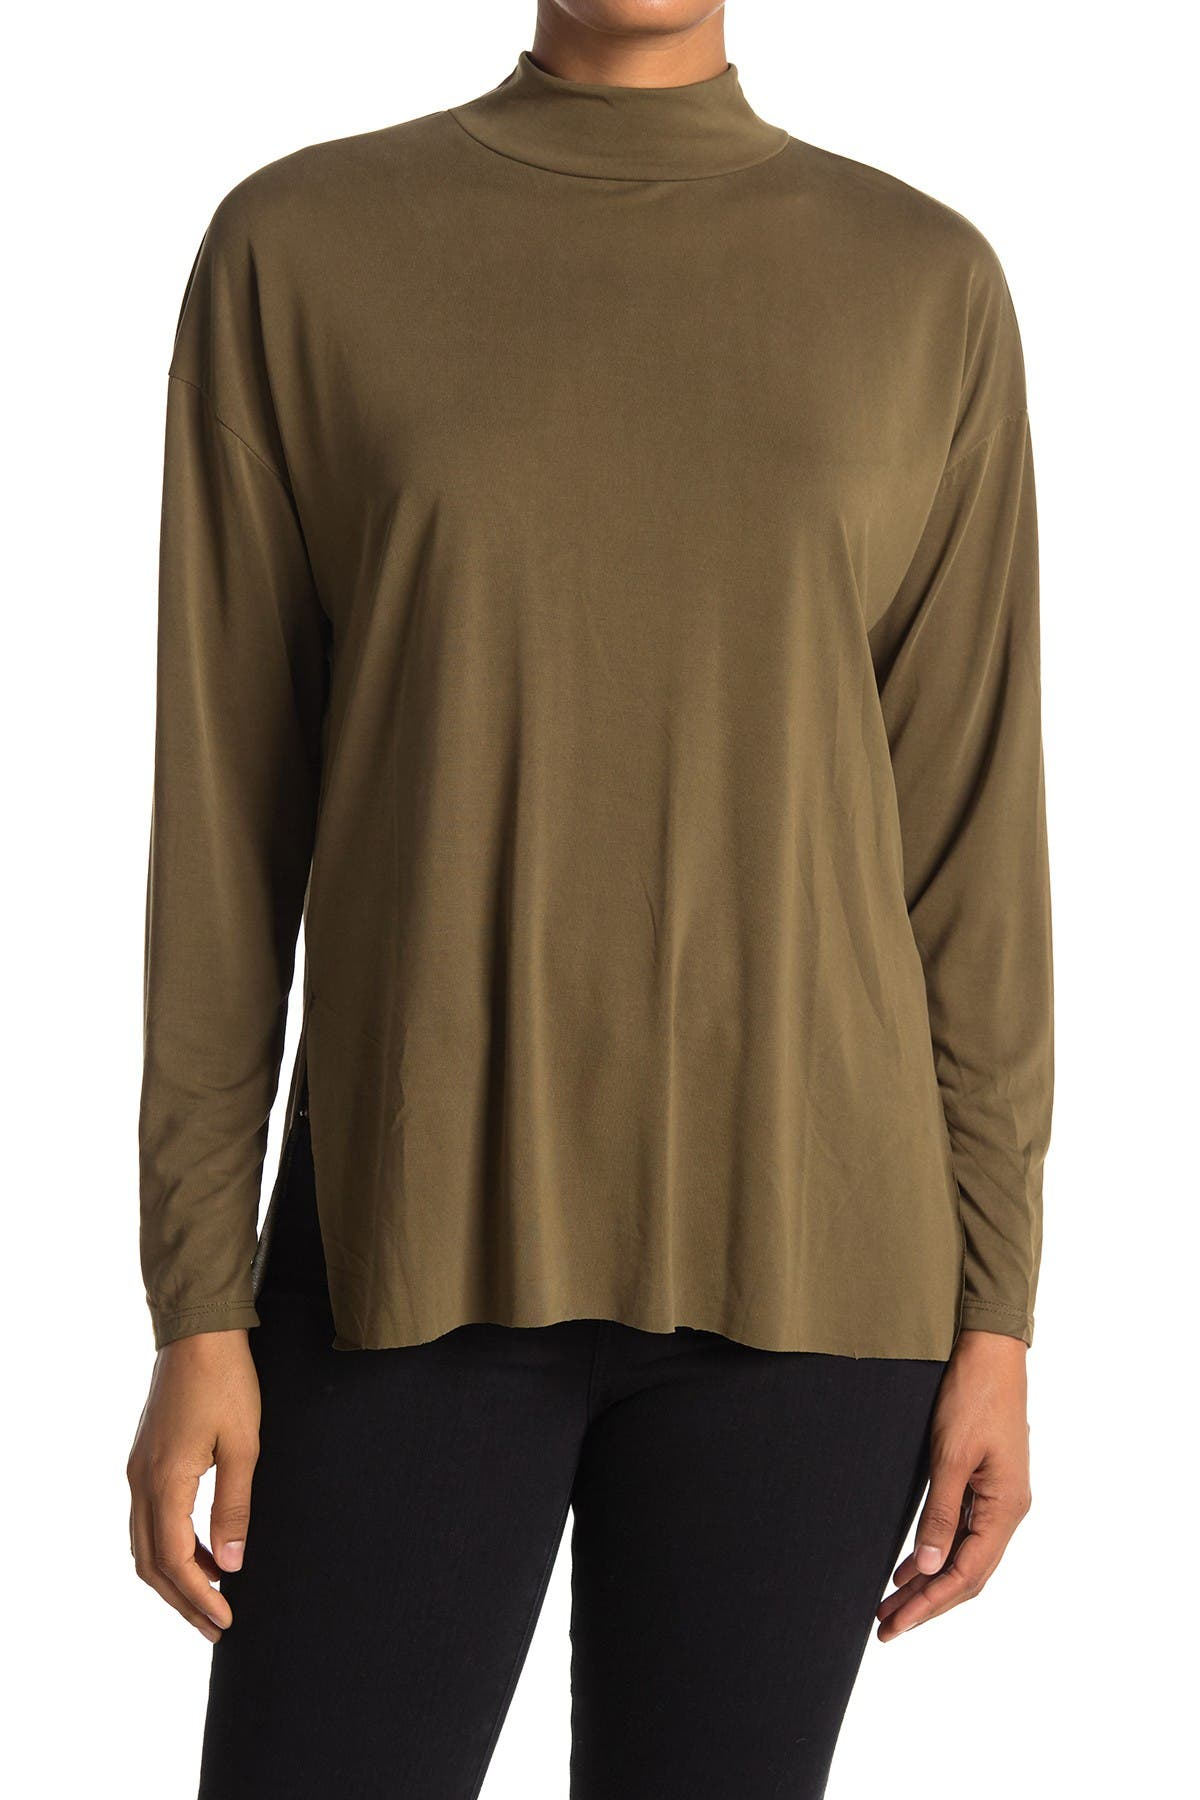 Image of Lush Mock Neck Long Sleeve Tunic Top